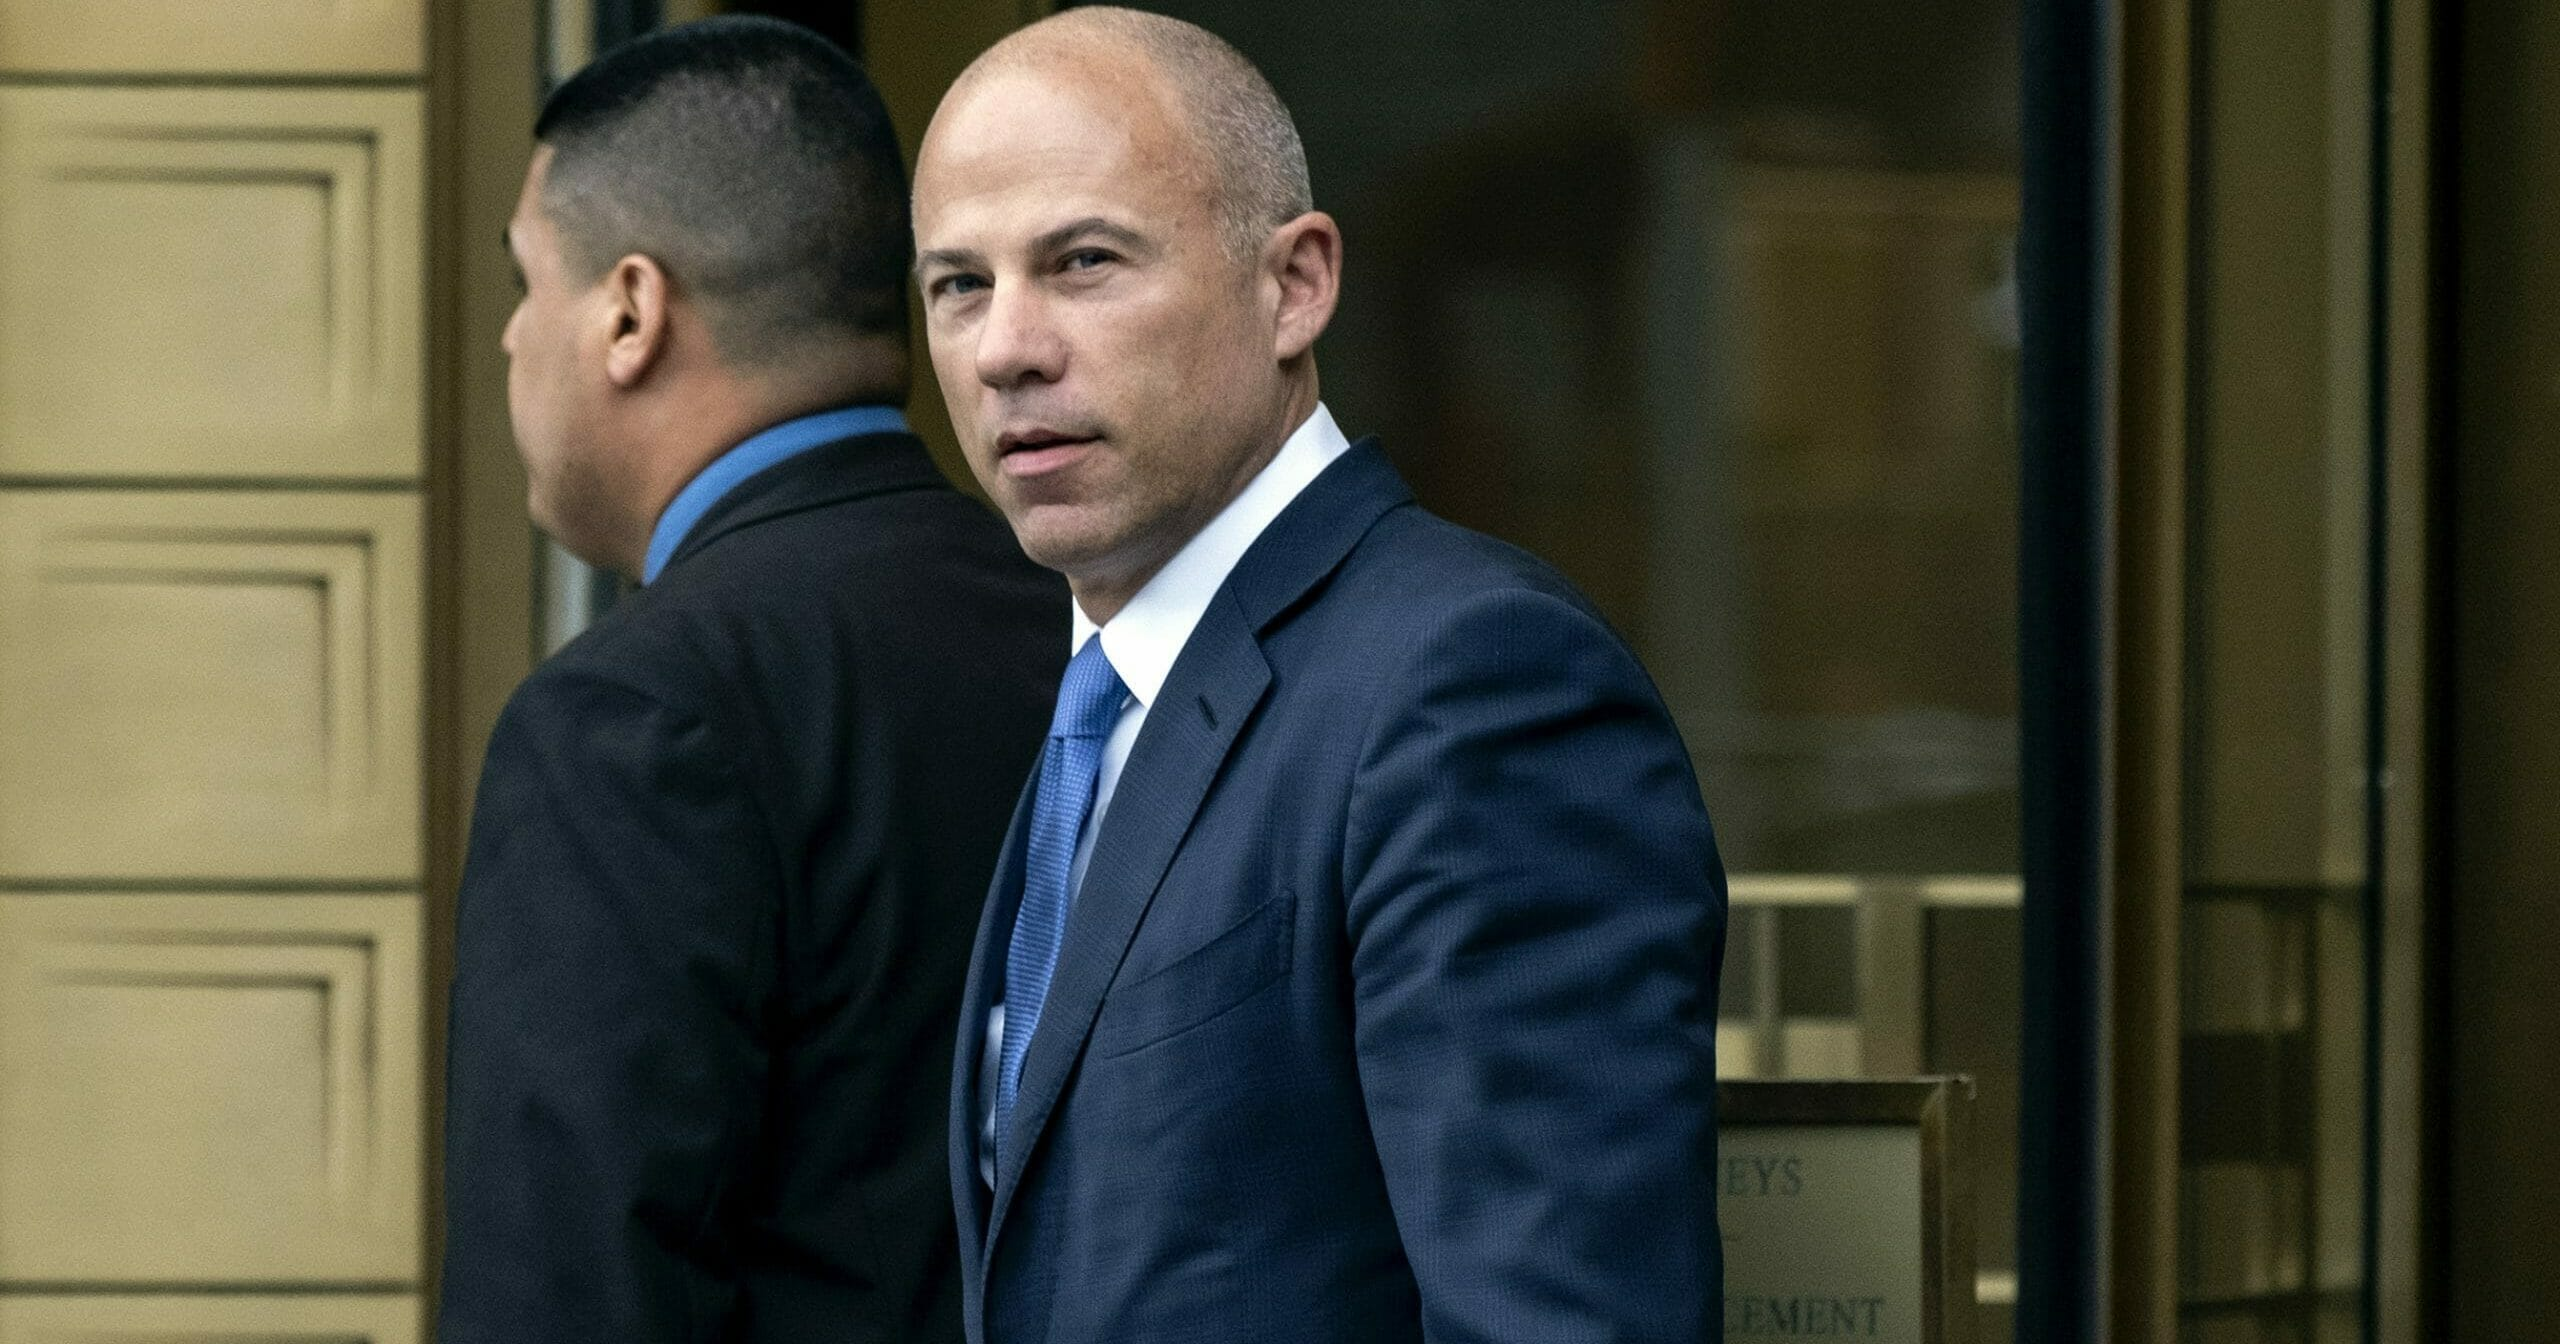 In this July 23, 2019, file photo, California attorney Michael Avenatti walks from a courthouse in New York after facing charges.